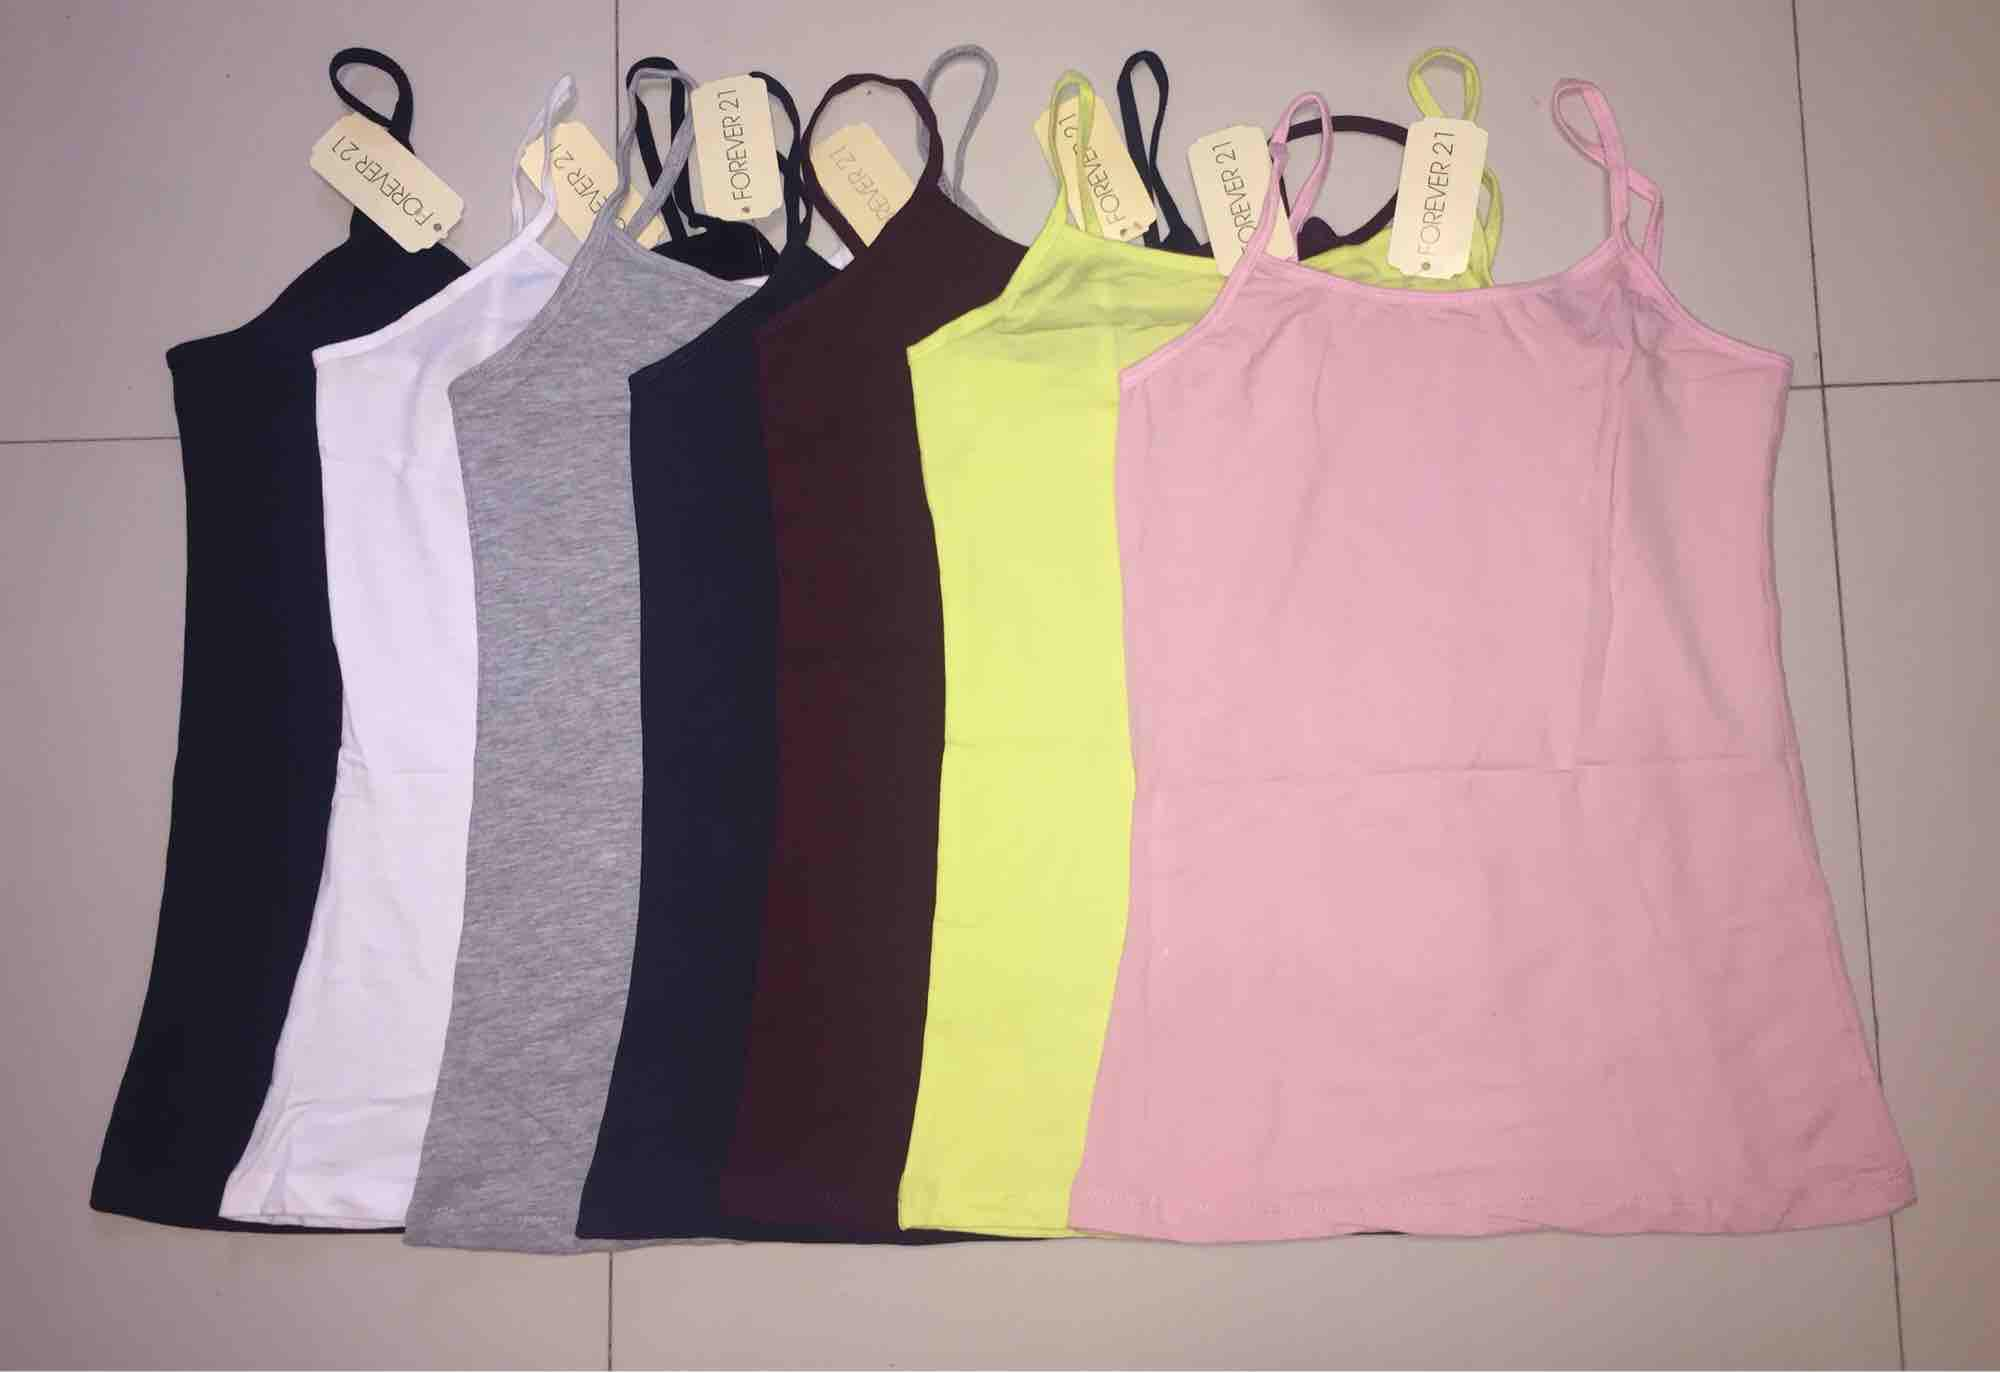 800d3ac95f1e8 Tank Tops for Women for sale - Camisole for Women online brands ...